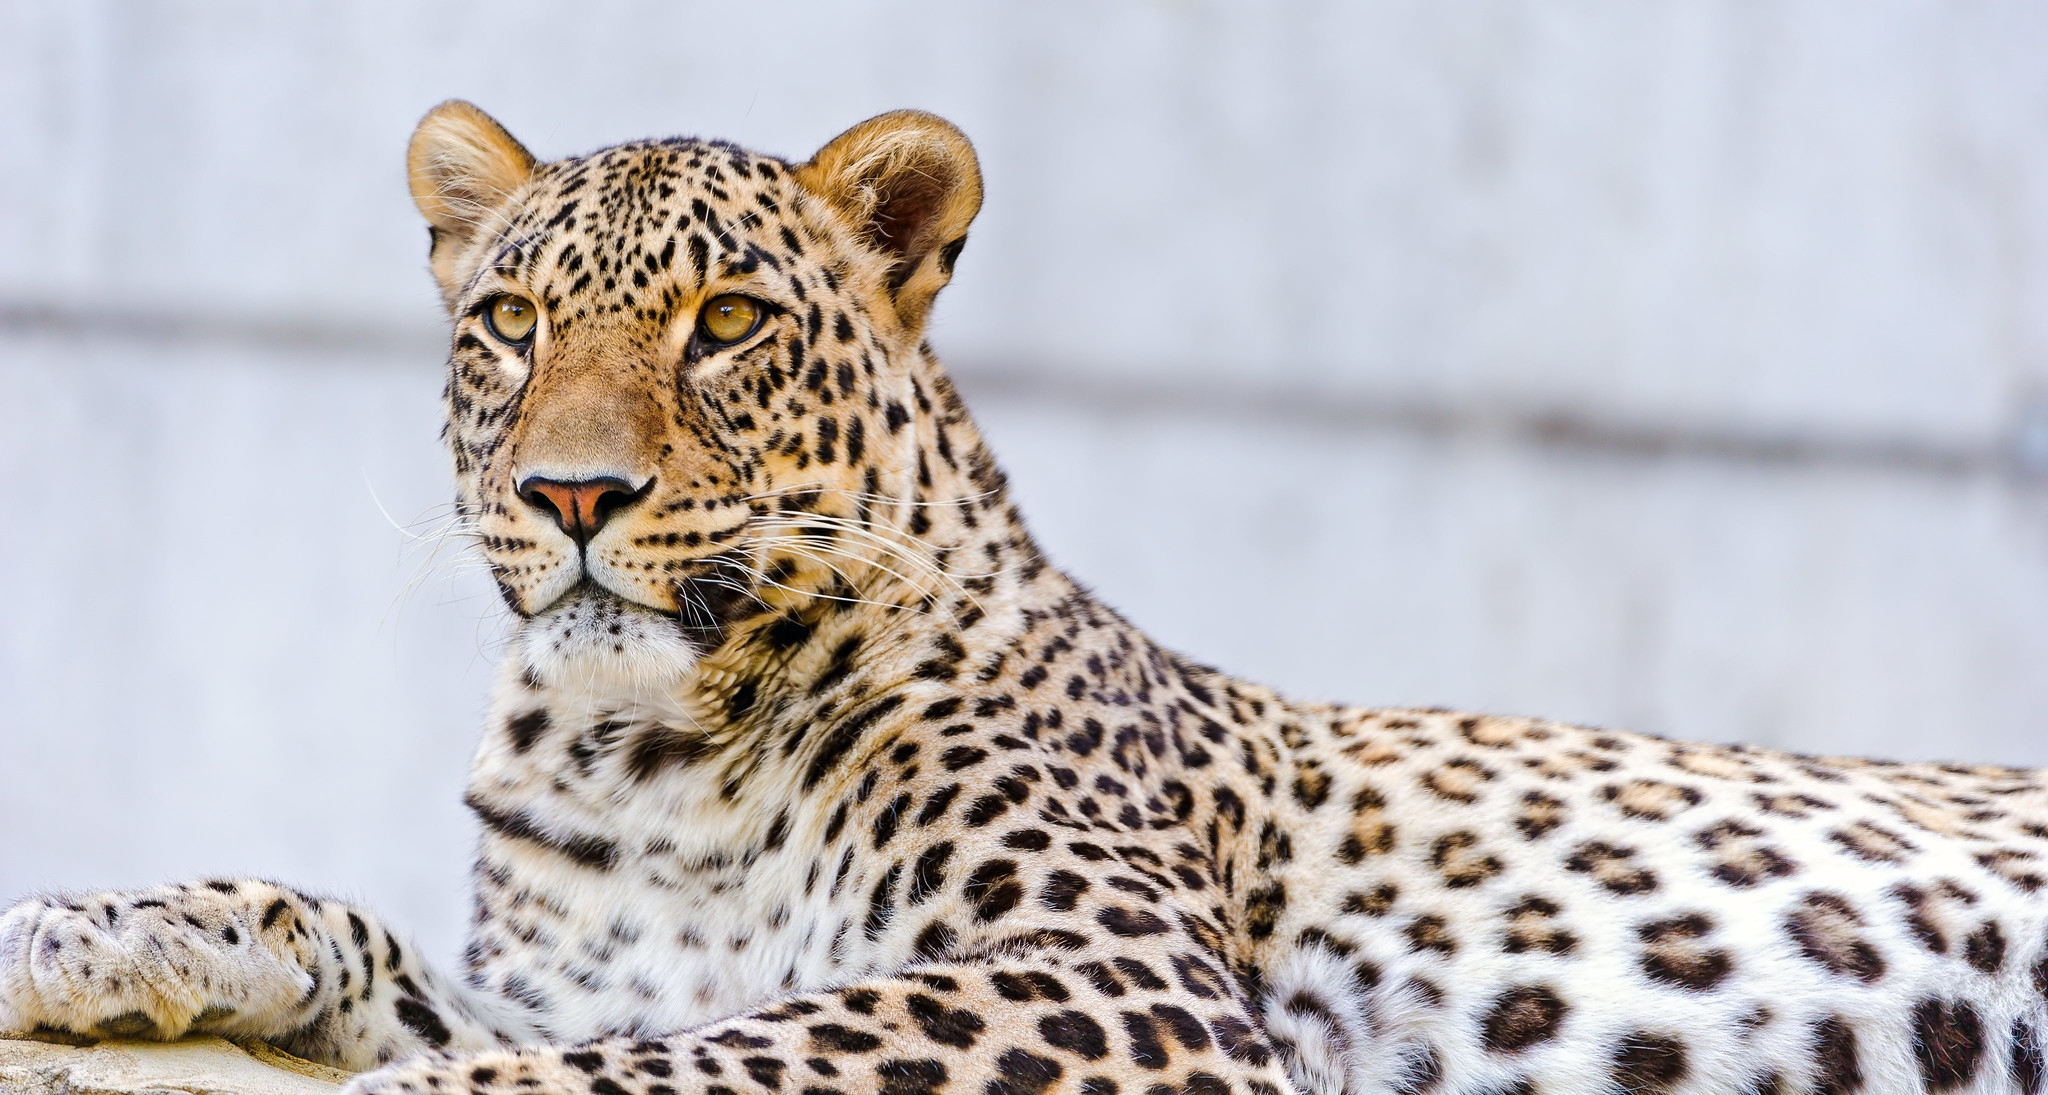 A Persian Leopard seen at Dählhölzli zoo in Bern. (Photo: Flickr / Creative Commons)